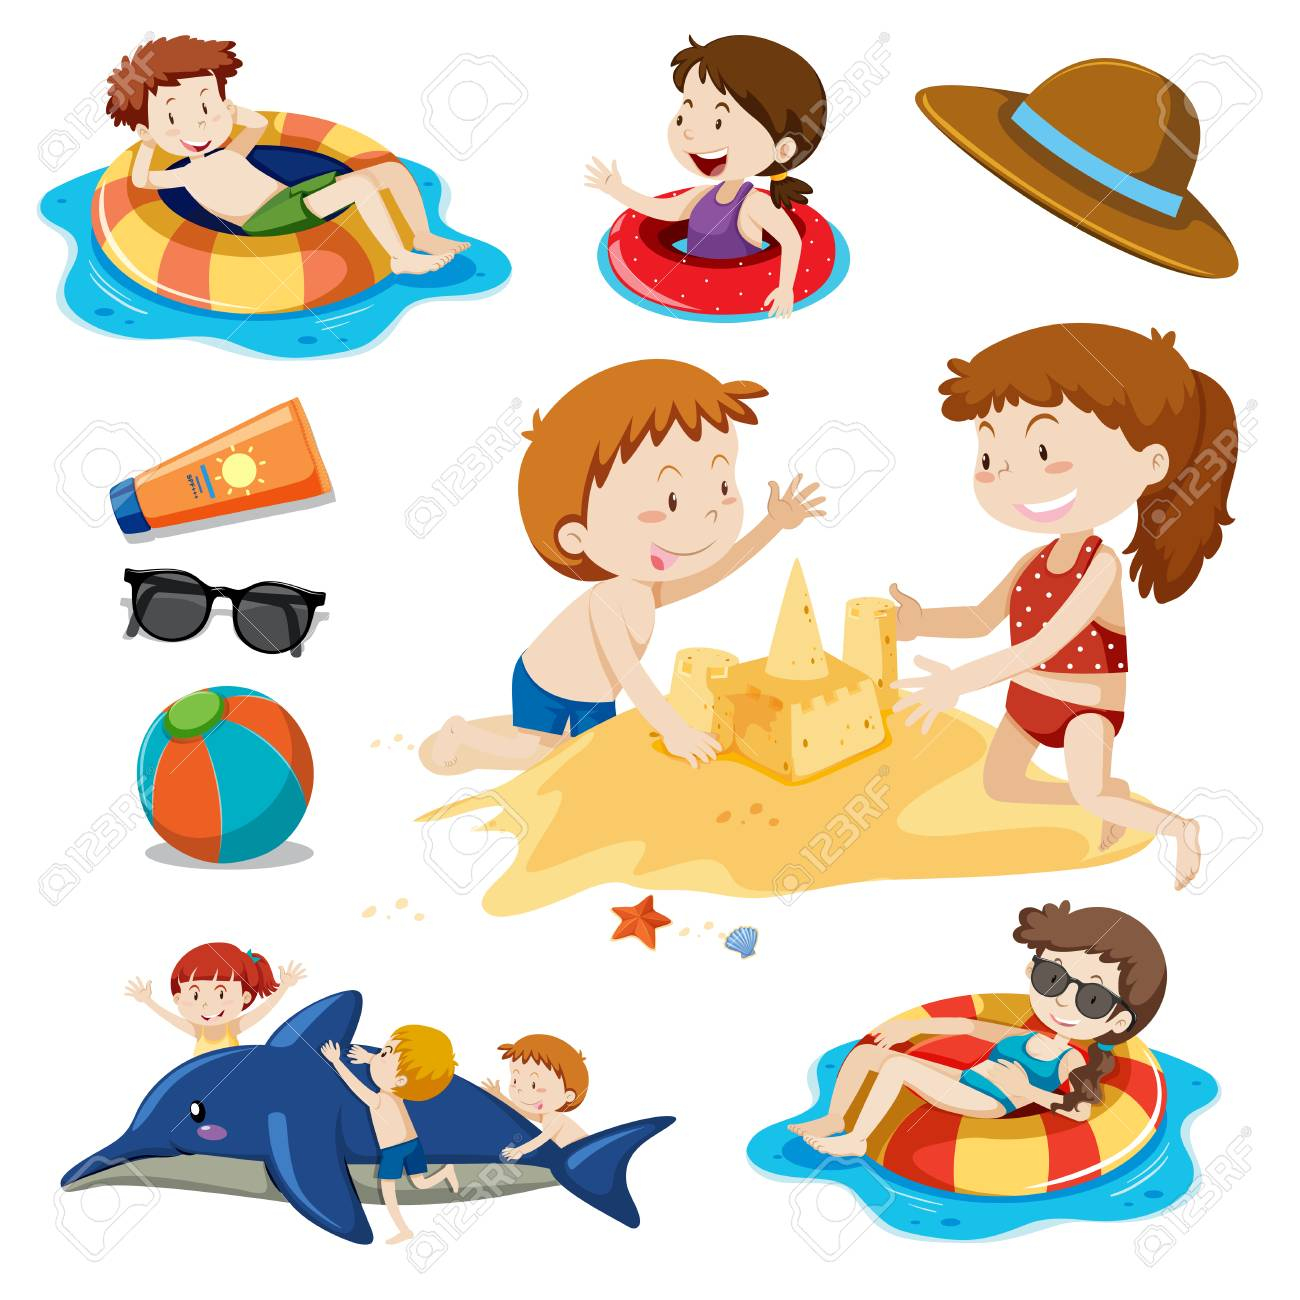 A Set of Children and Beach Activities illustration - 101914587